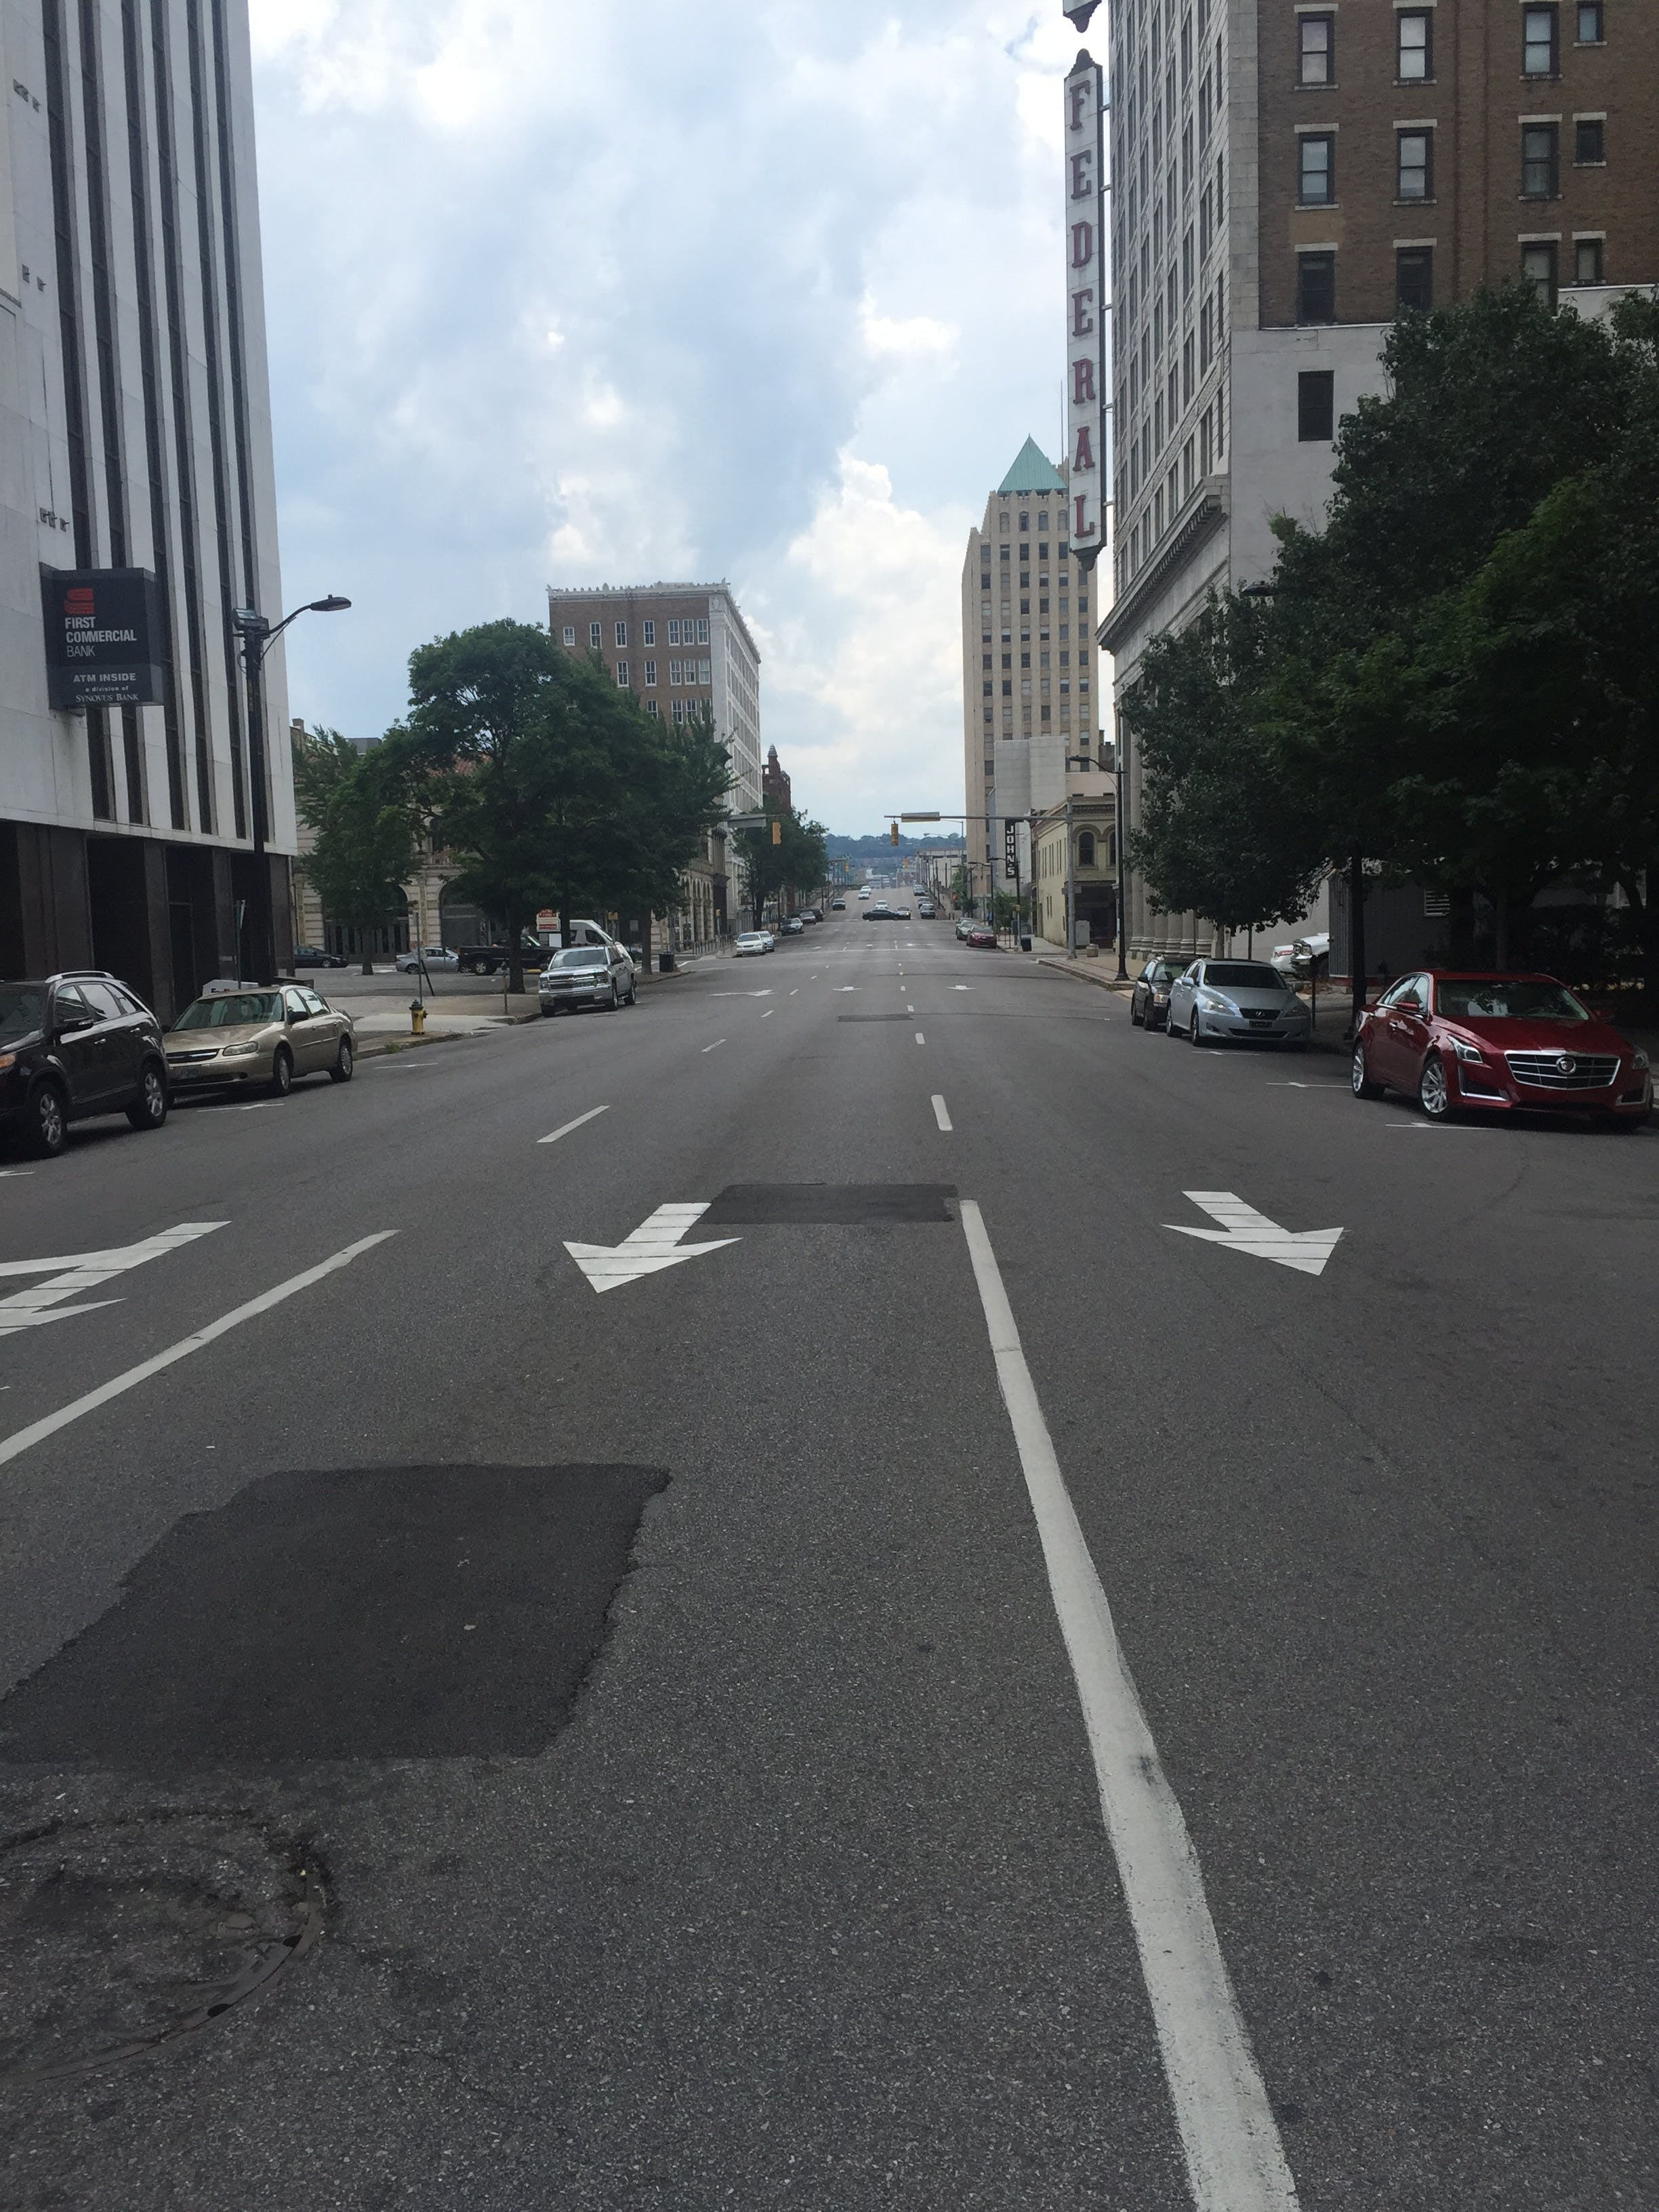 Free stock photo of alabama, birmingham, cars, crosswalk